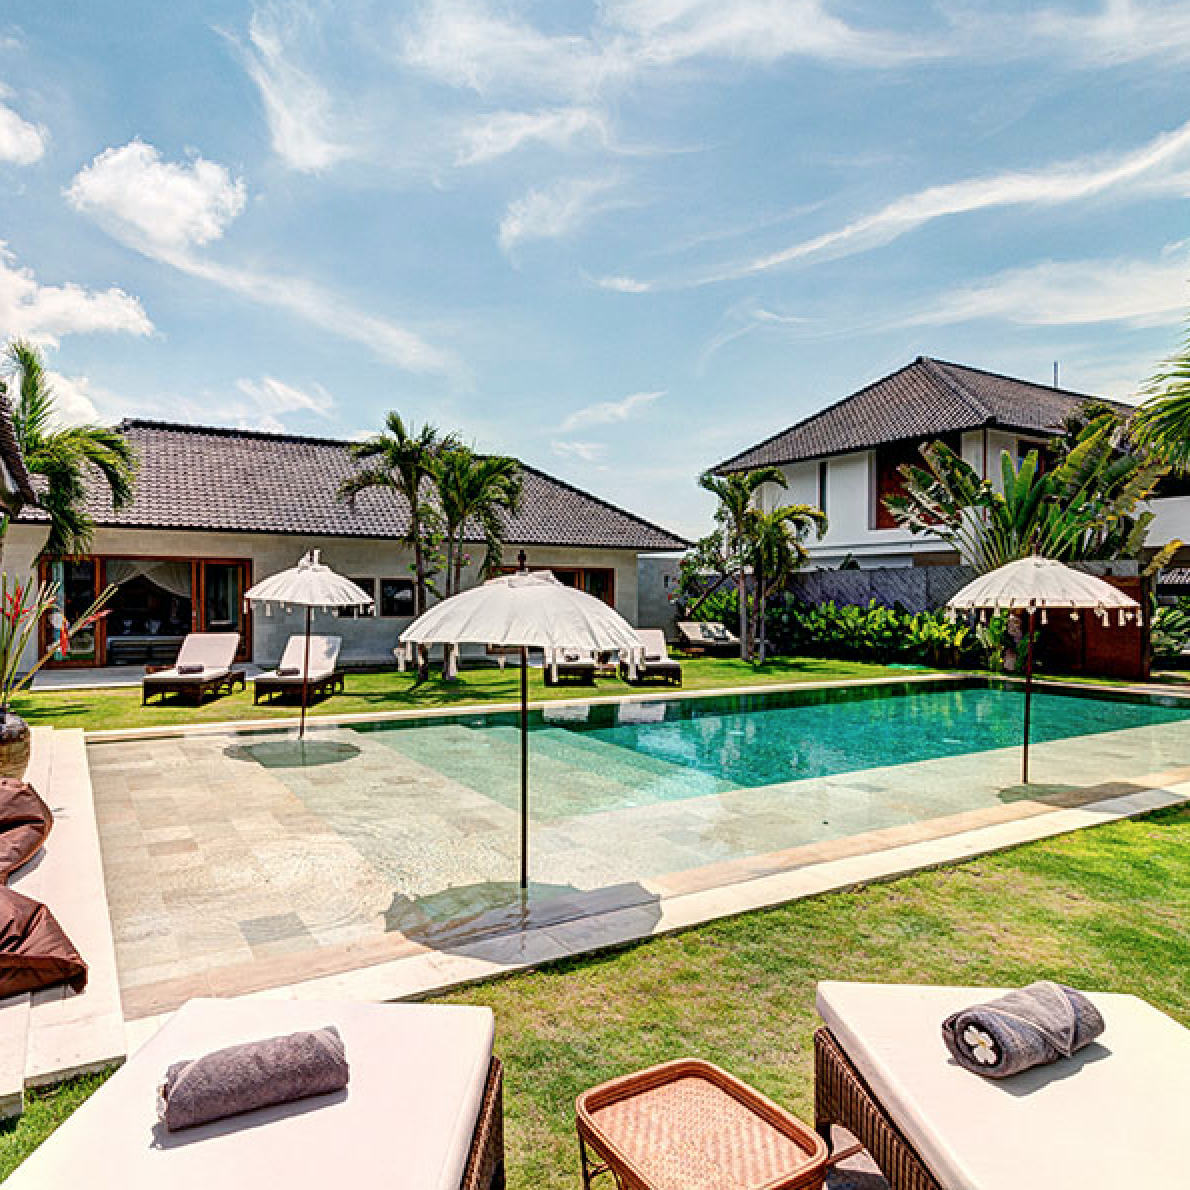 ABACA VILLAS, SEMINYAK, 1,3,5,6,15 bedrooms, $250 – $3.000 per night